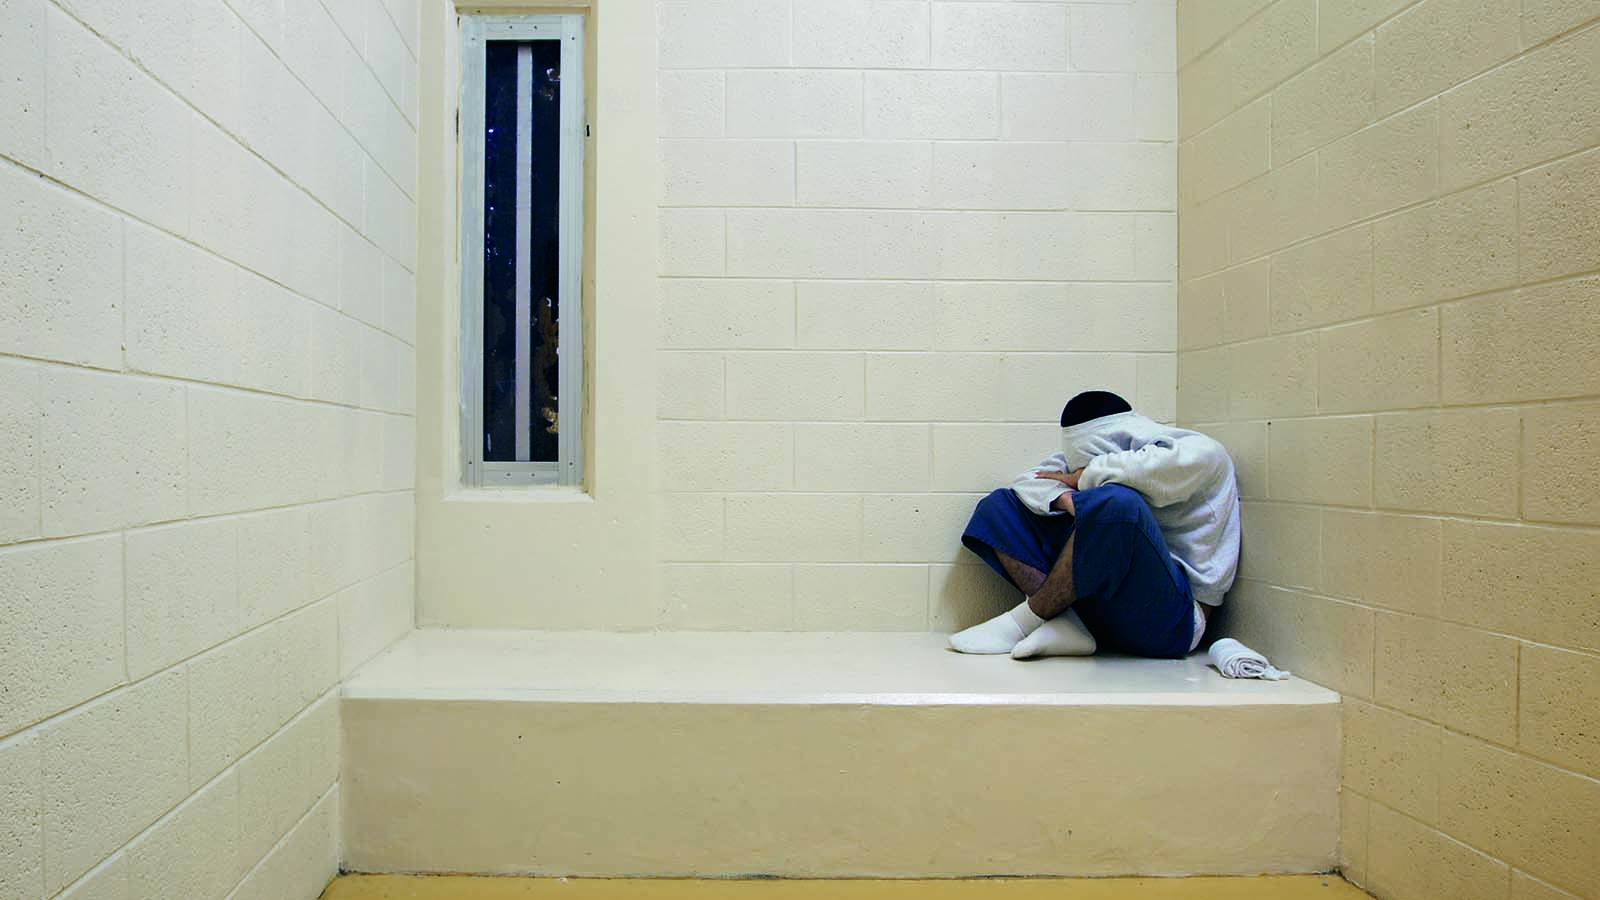 Why do we still put young people in solitary confinement?